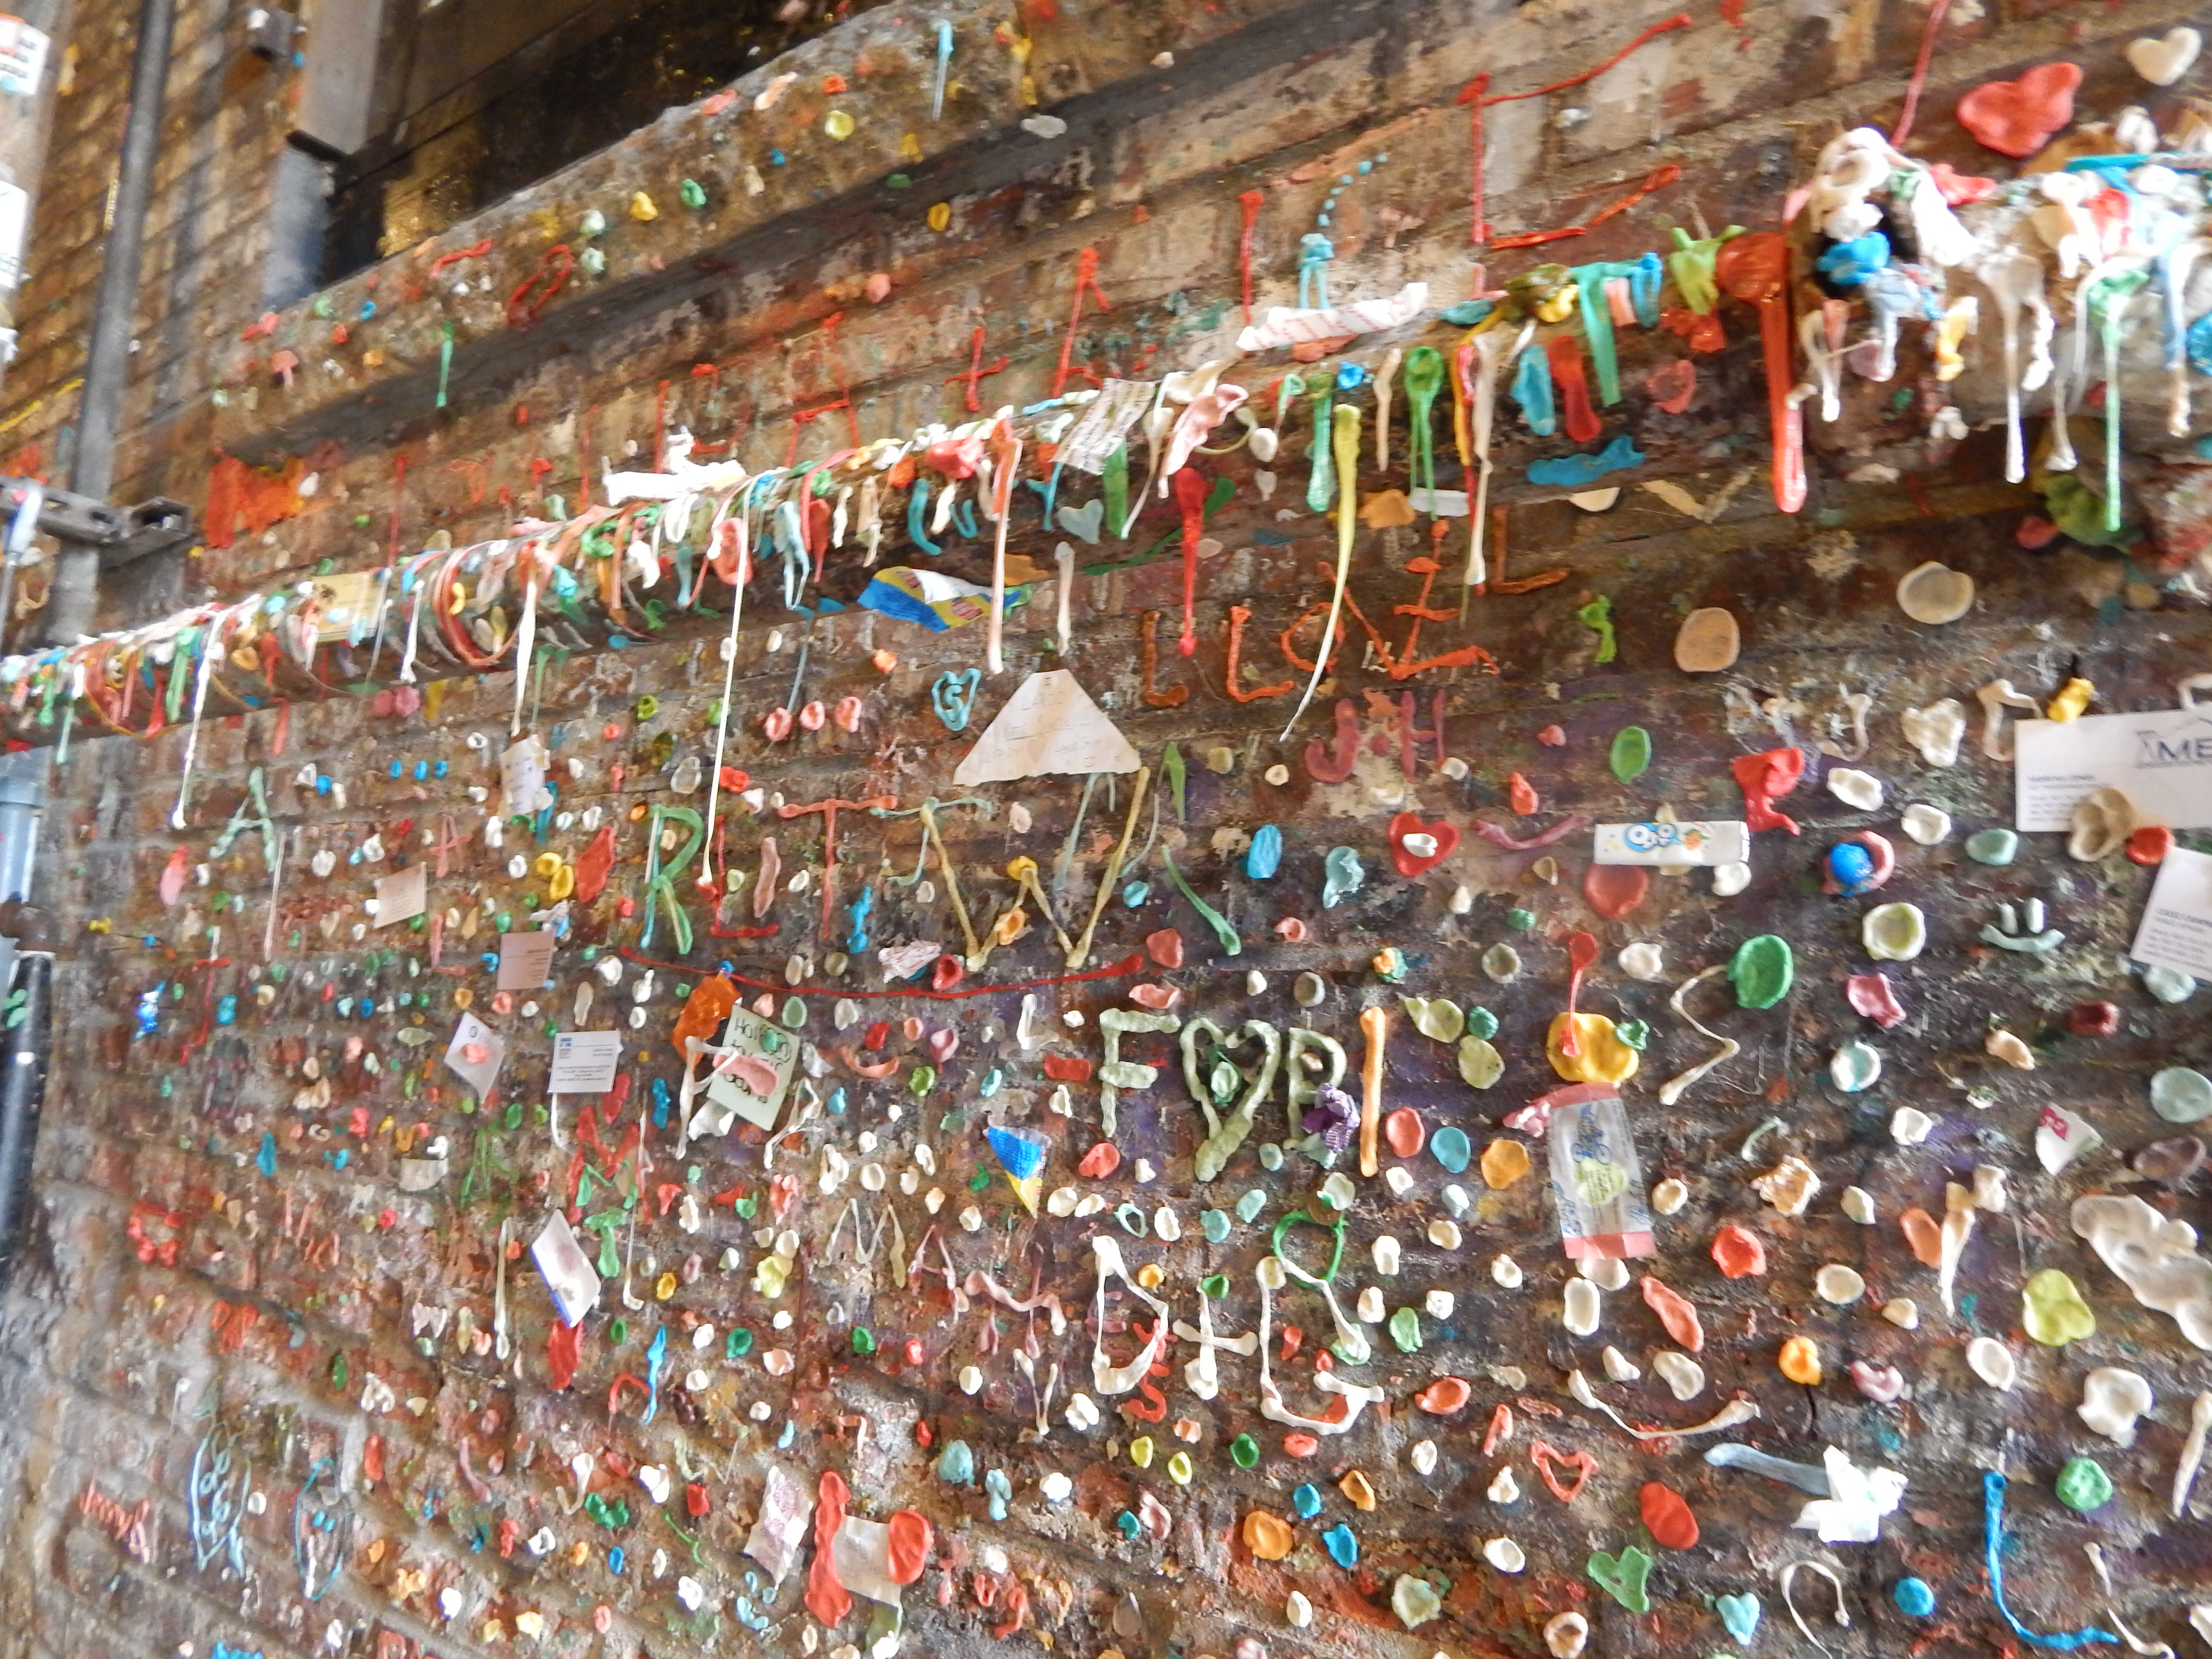 Seattle Gum Wall - Post Alley.